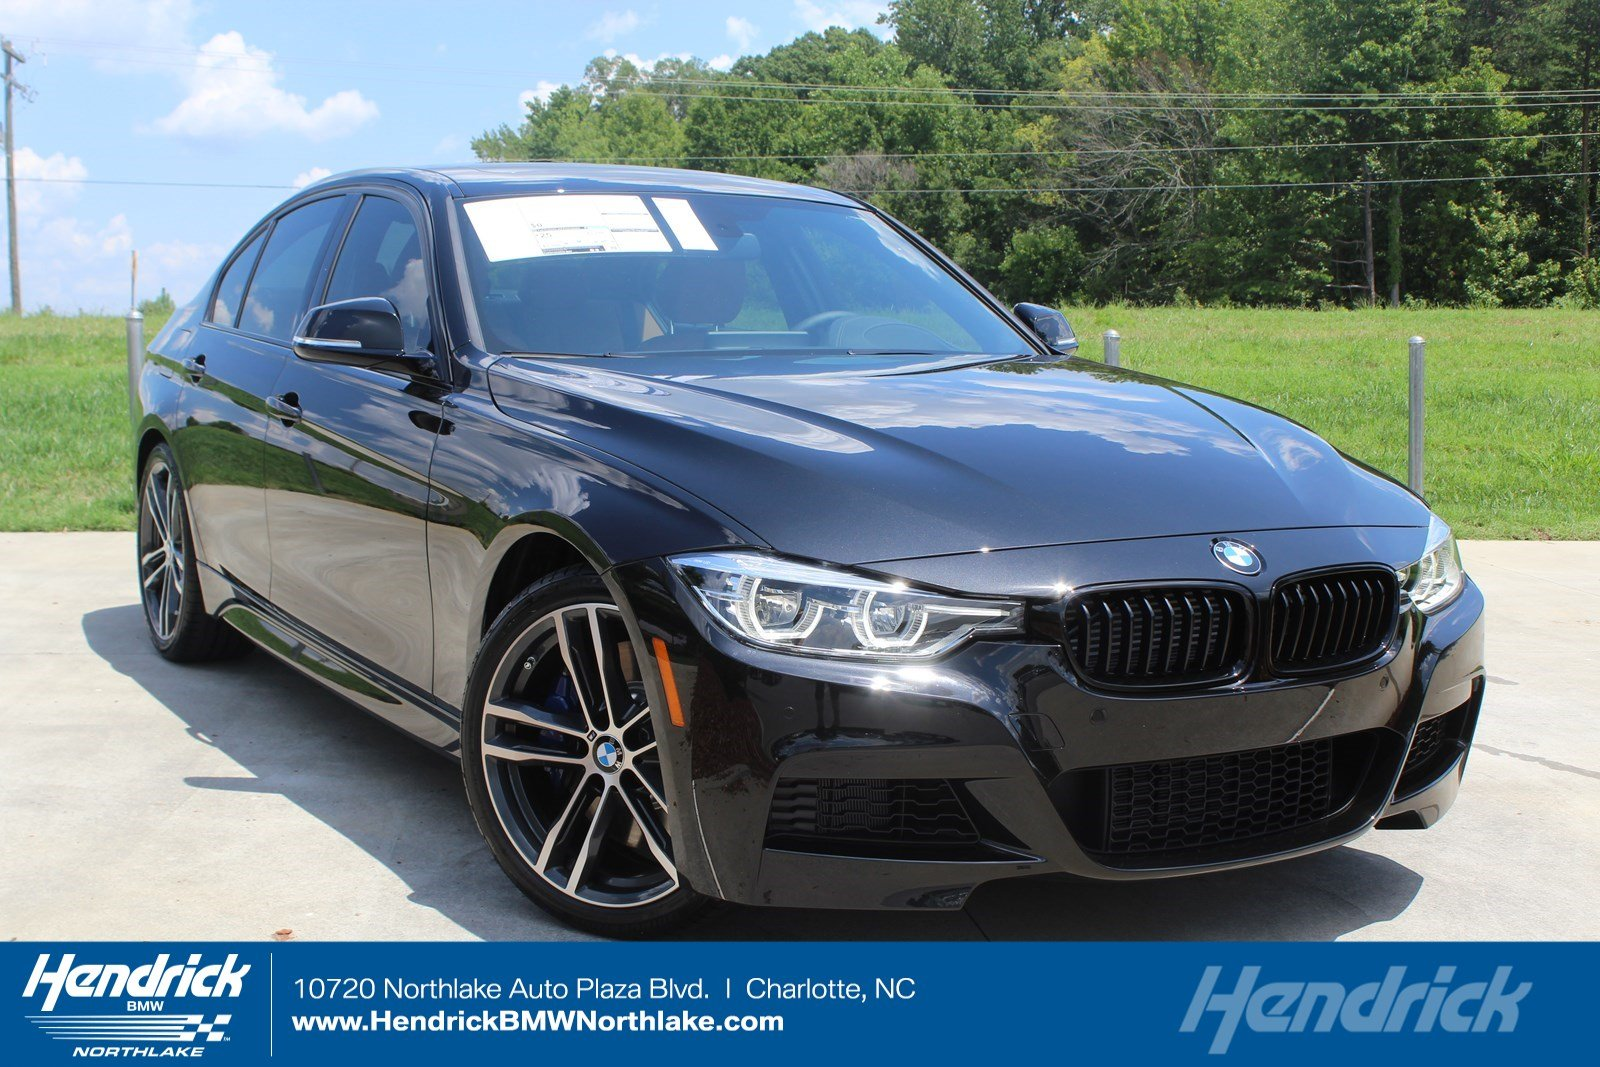 New 2018 Bmw 3 Series Sedan For Sale In Charlotte Nc Near Concord